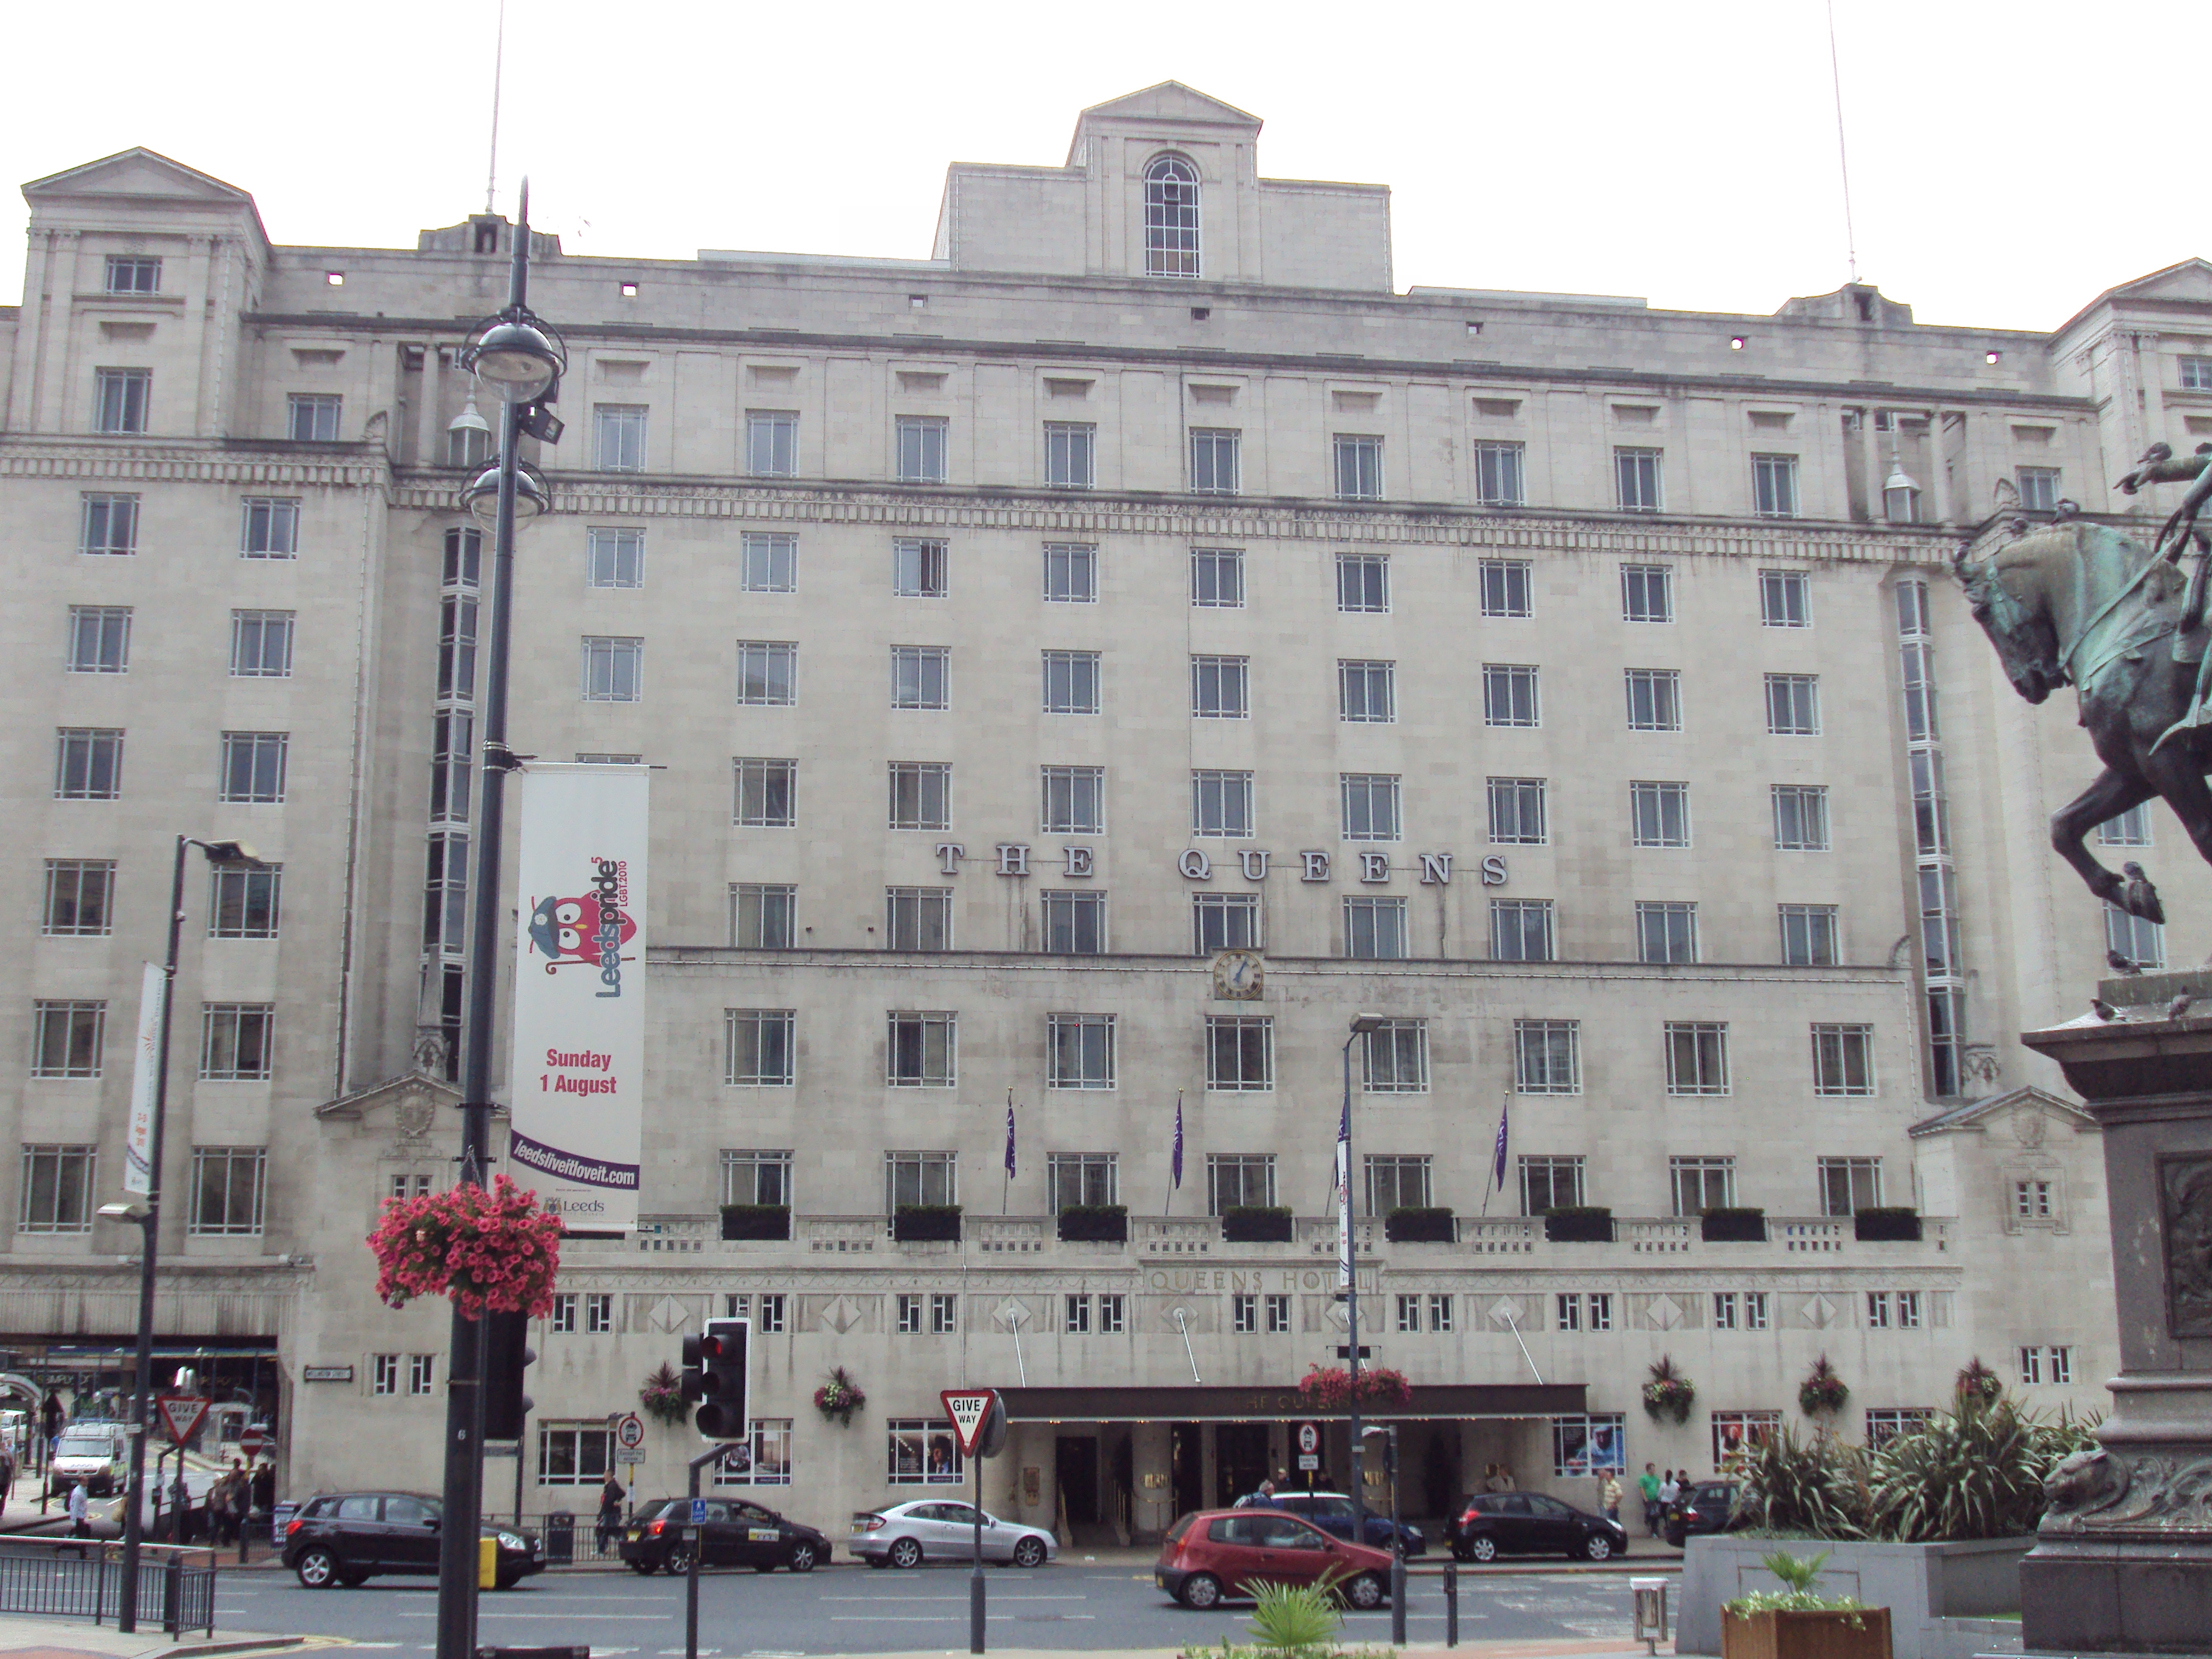 The Queens Hotel City Square Leeds